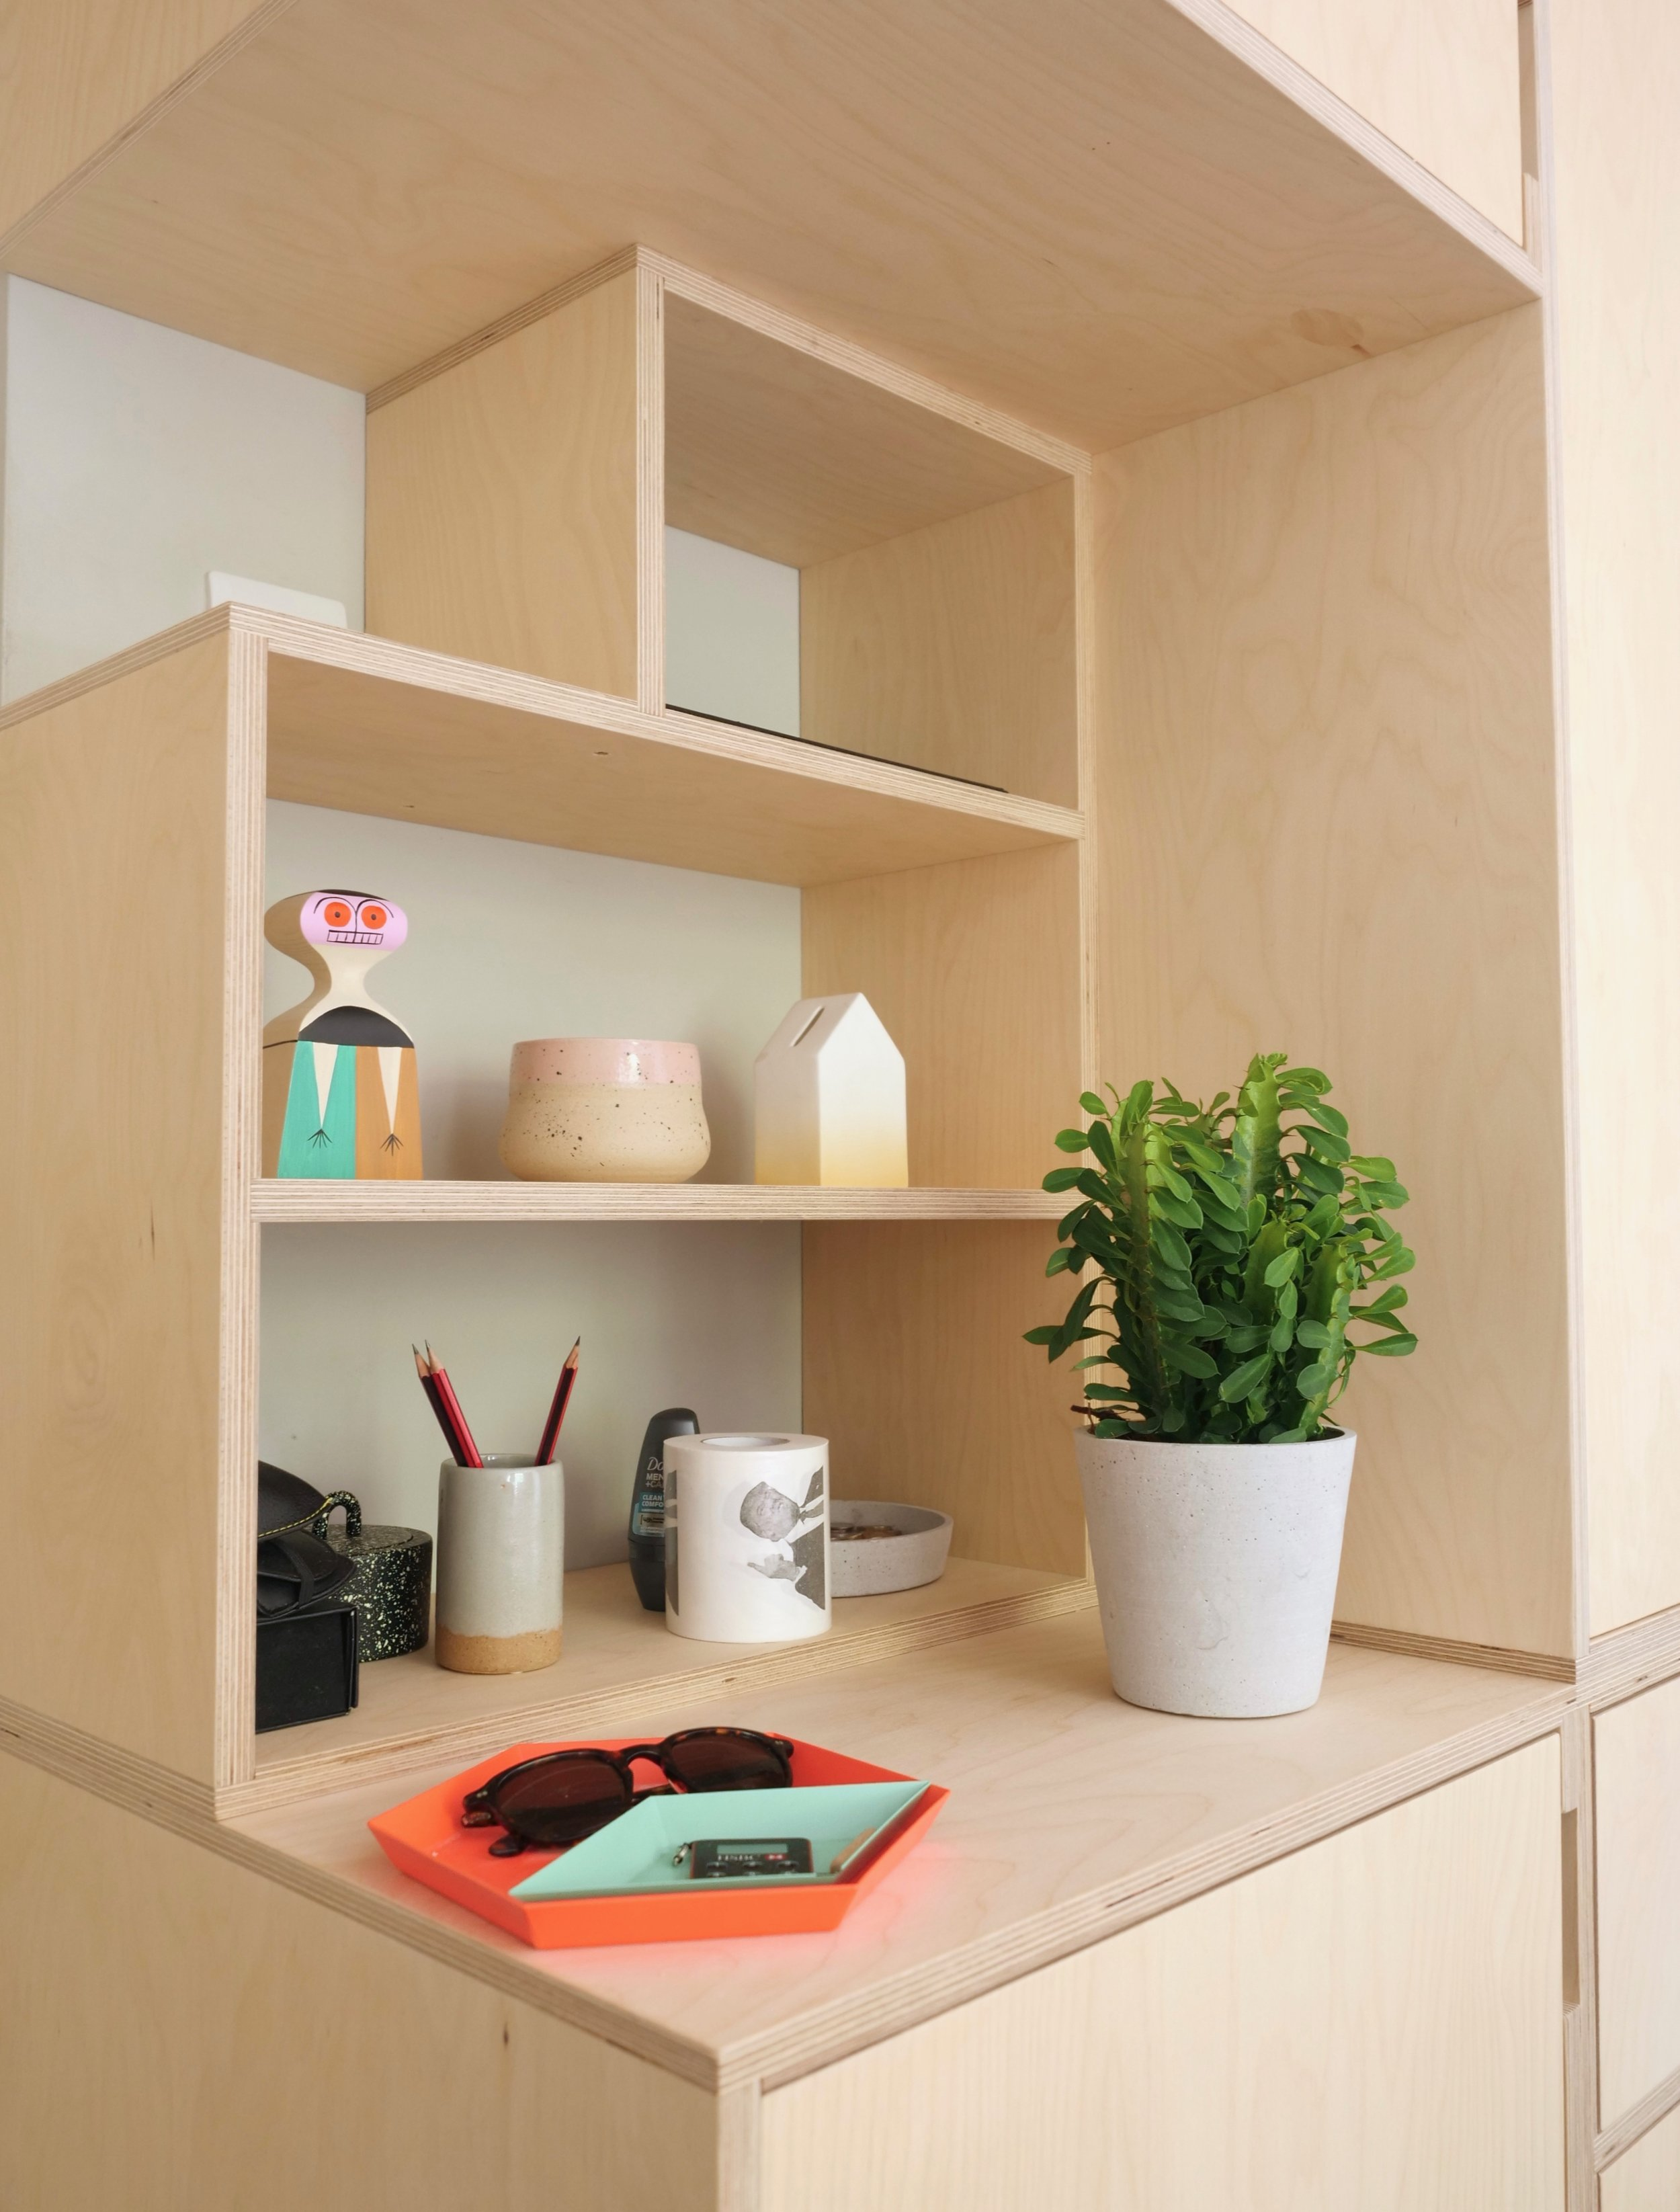 Access to the light switch helps break up the space and create a feature shelf